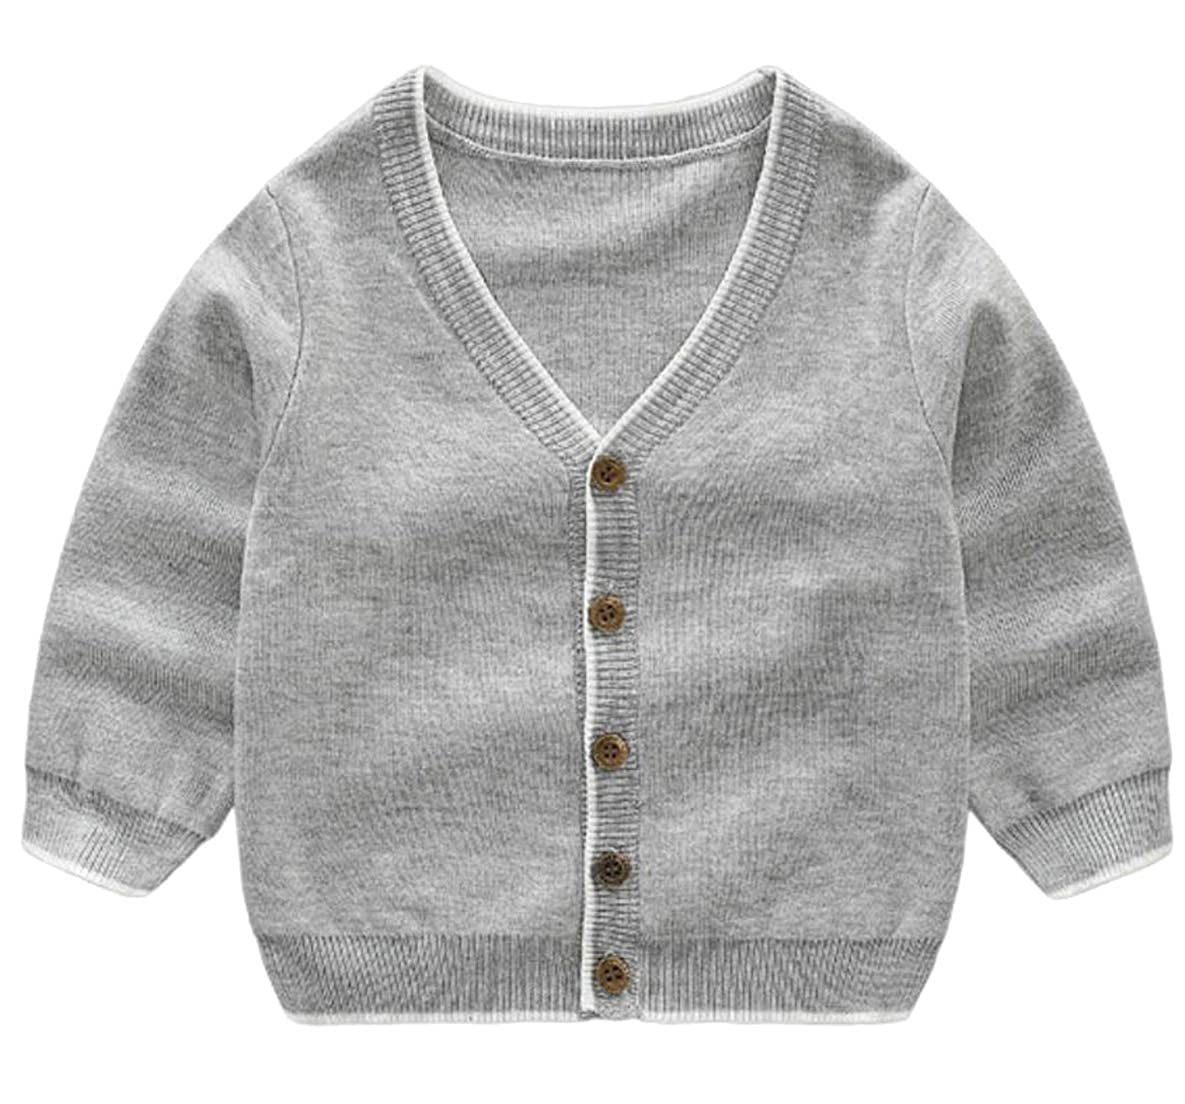 Hajotrawa Girls and Boys Knit Long Sleeve Children Tops Sweaters Cardigans